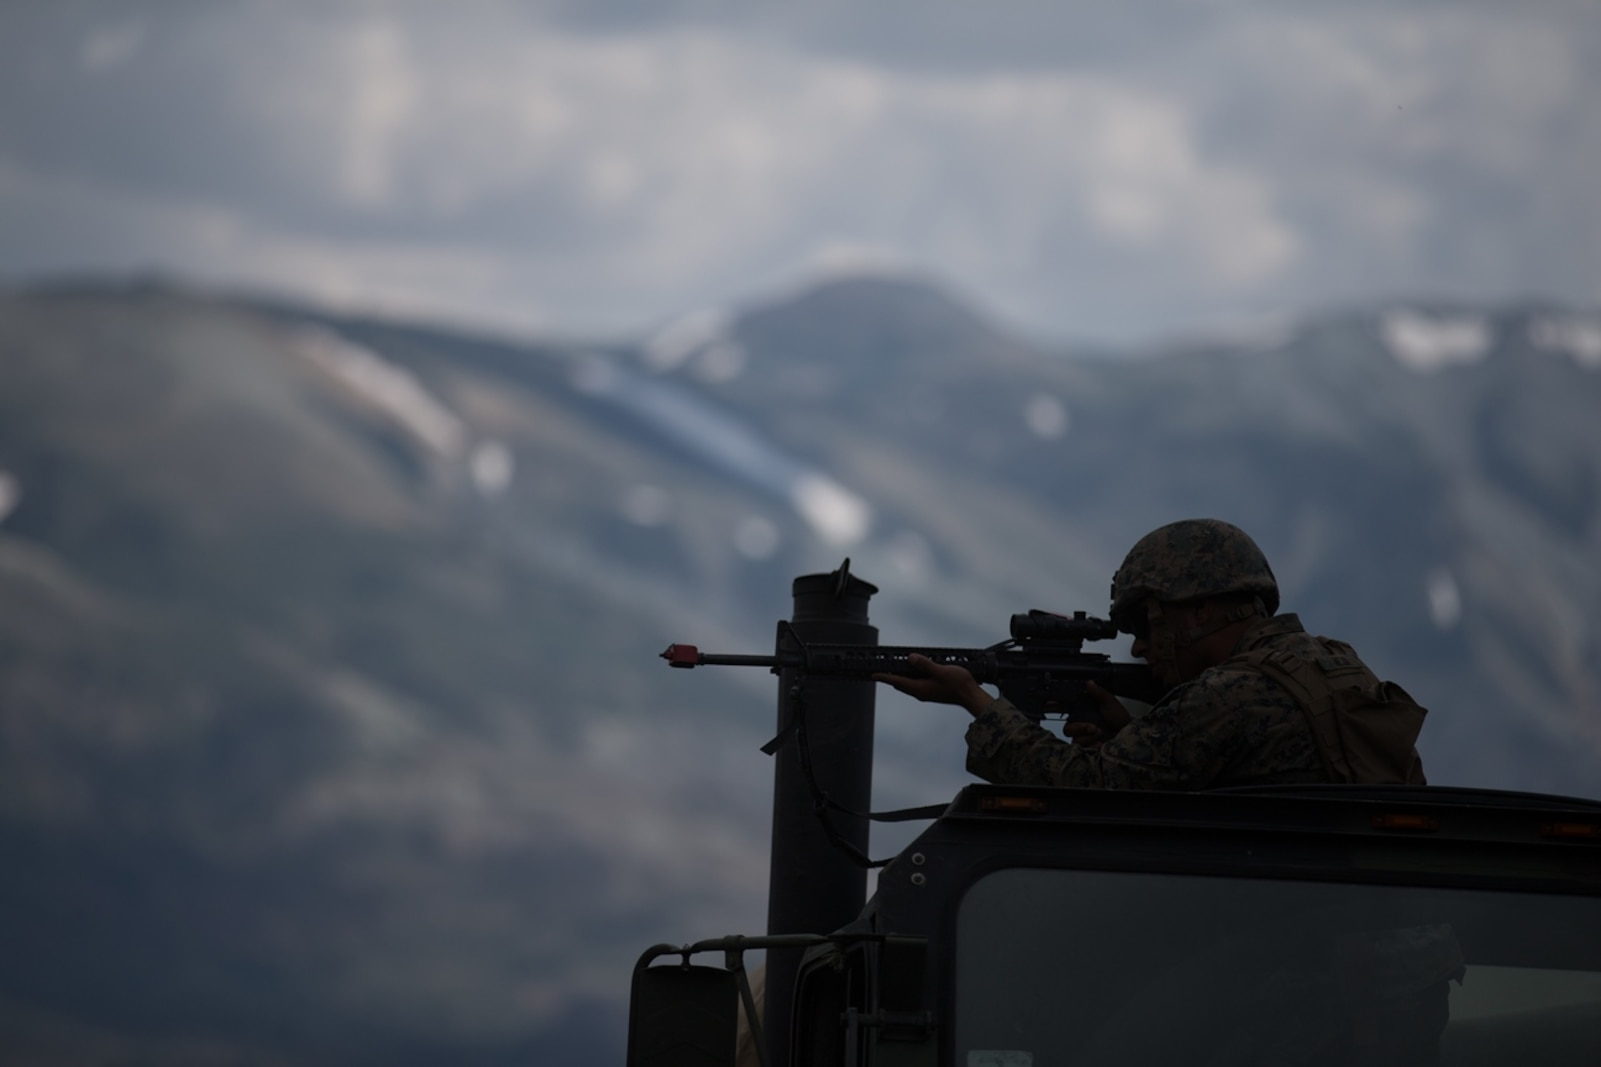 U.S. Marine Lance Cpl. Luis Mejia, a motor transportation operator with Combat Logistics Battalion 5, Combat Logistics Regiment 1, 1st Marine Logistics Group, posts security while participating in a convoy during Mountain Training Exercise 4-17 at Mountain Warfare Training Center, August 6, 2017. Marines participating in the Mountain Training Exercise post security to demonstrate protecting various areas against any possible simulated attack or ambush in the mountainous terrain. (U.S. Marine Corps photo by Lance Cpl. Timothy Shoemaker)